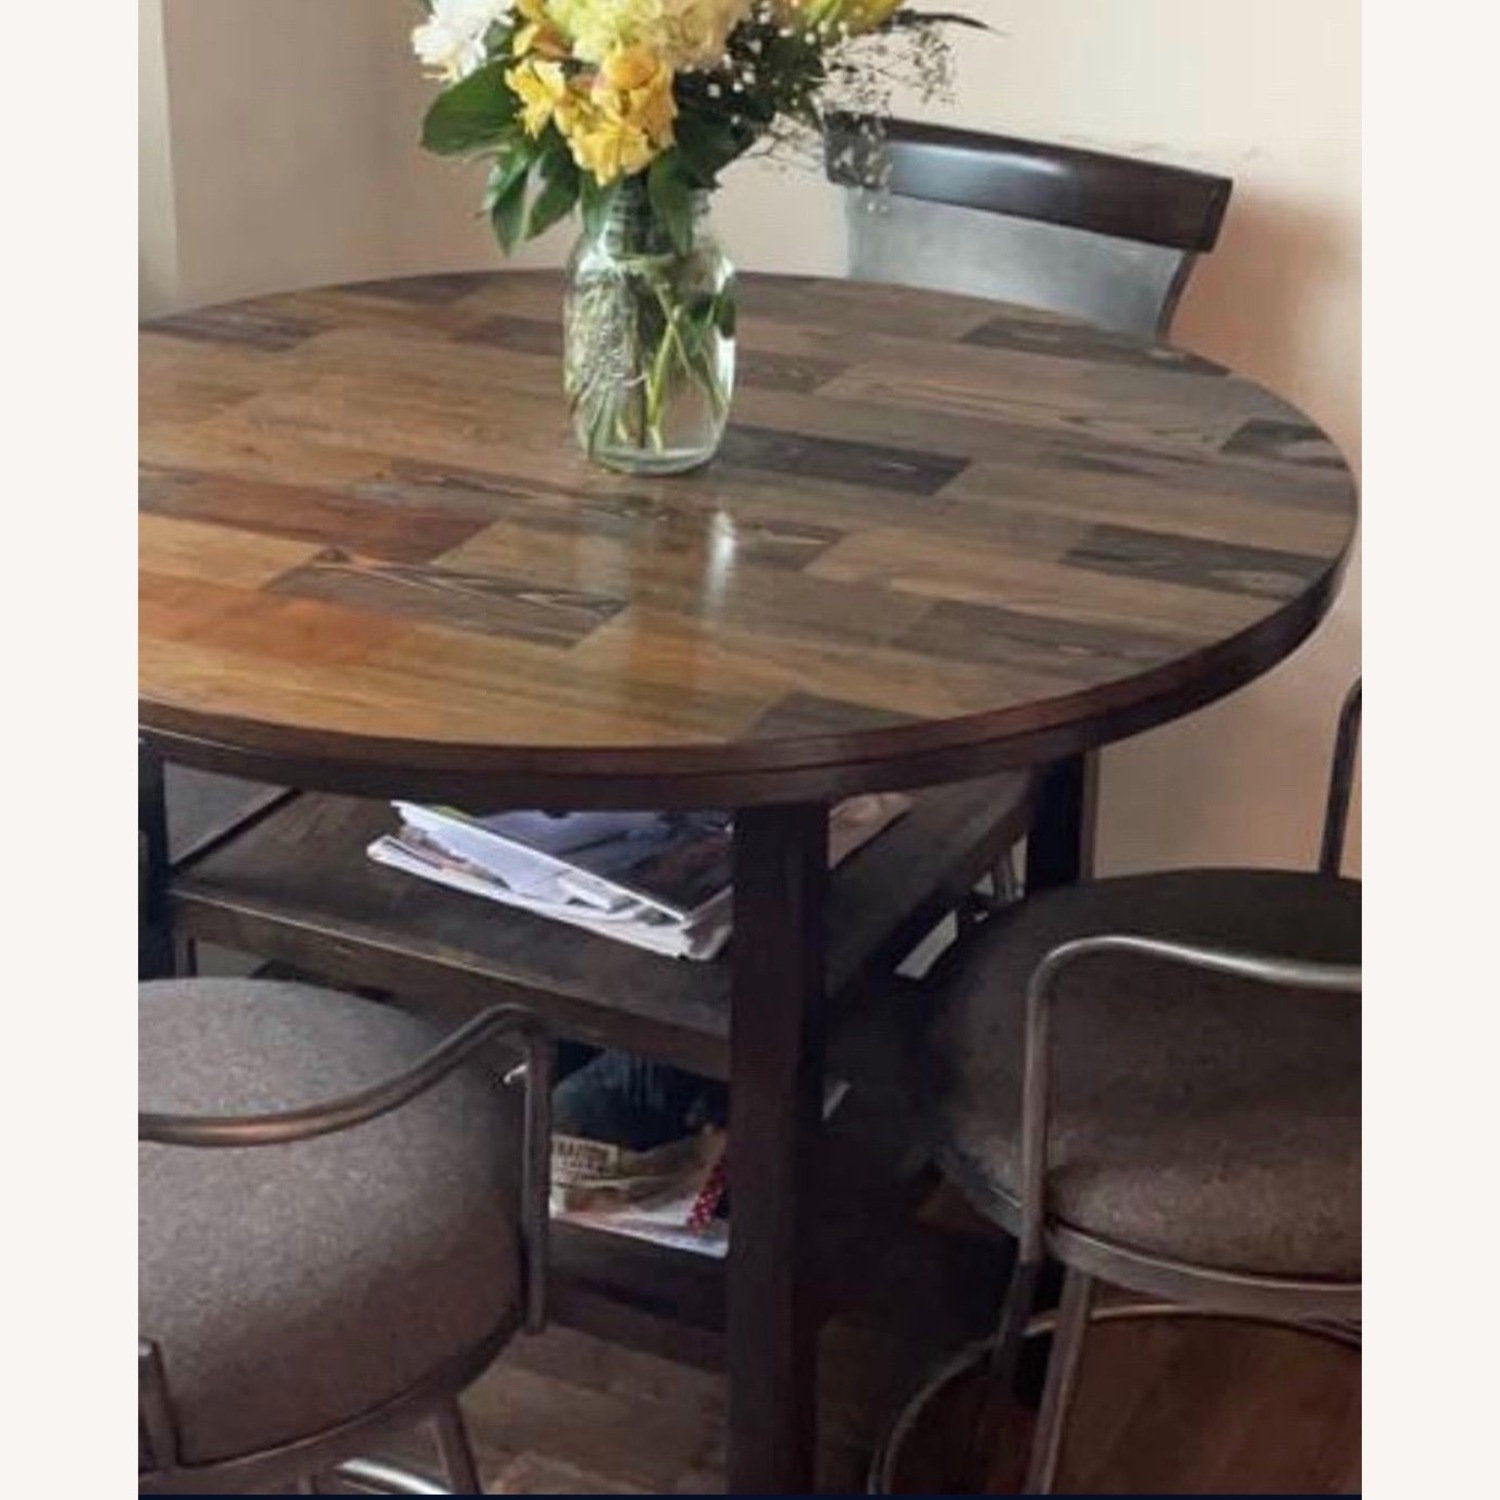 High Top Bistro Table with 4 Chairs - image-1